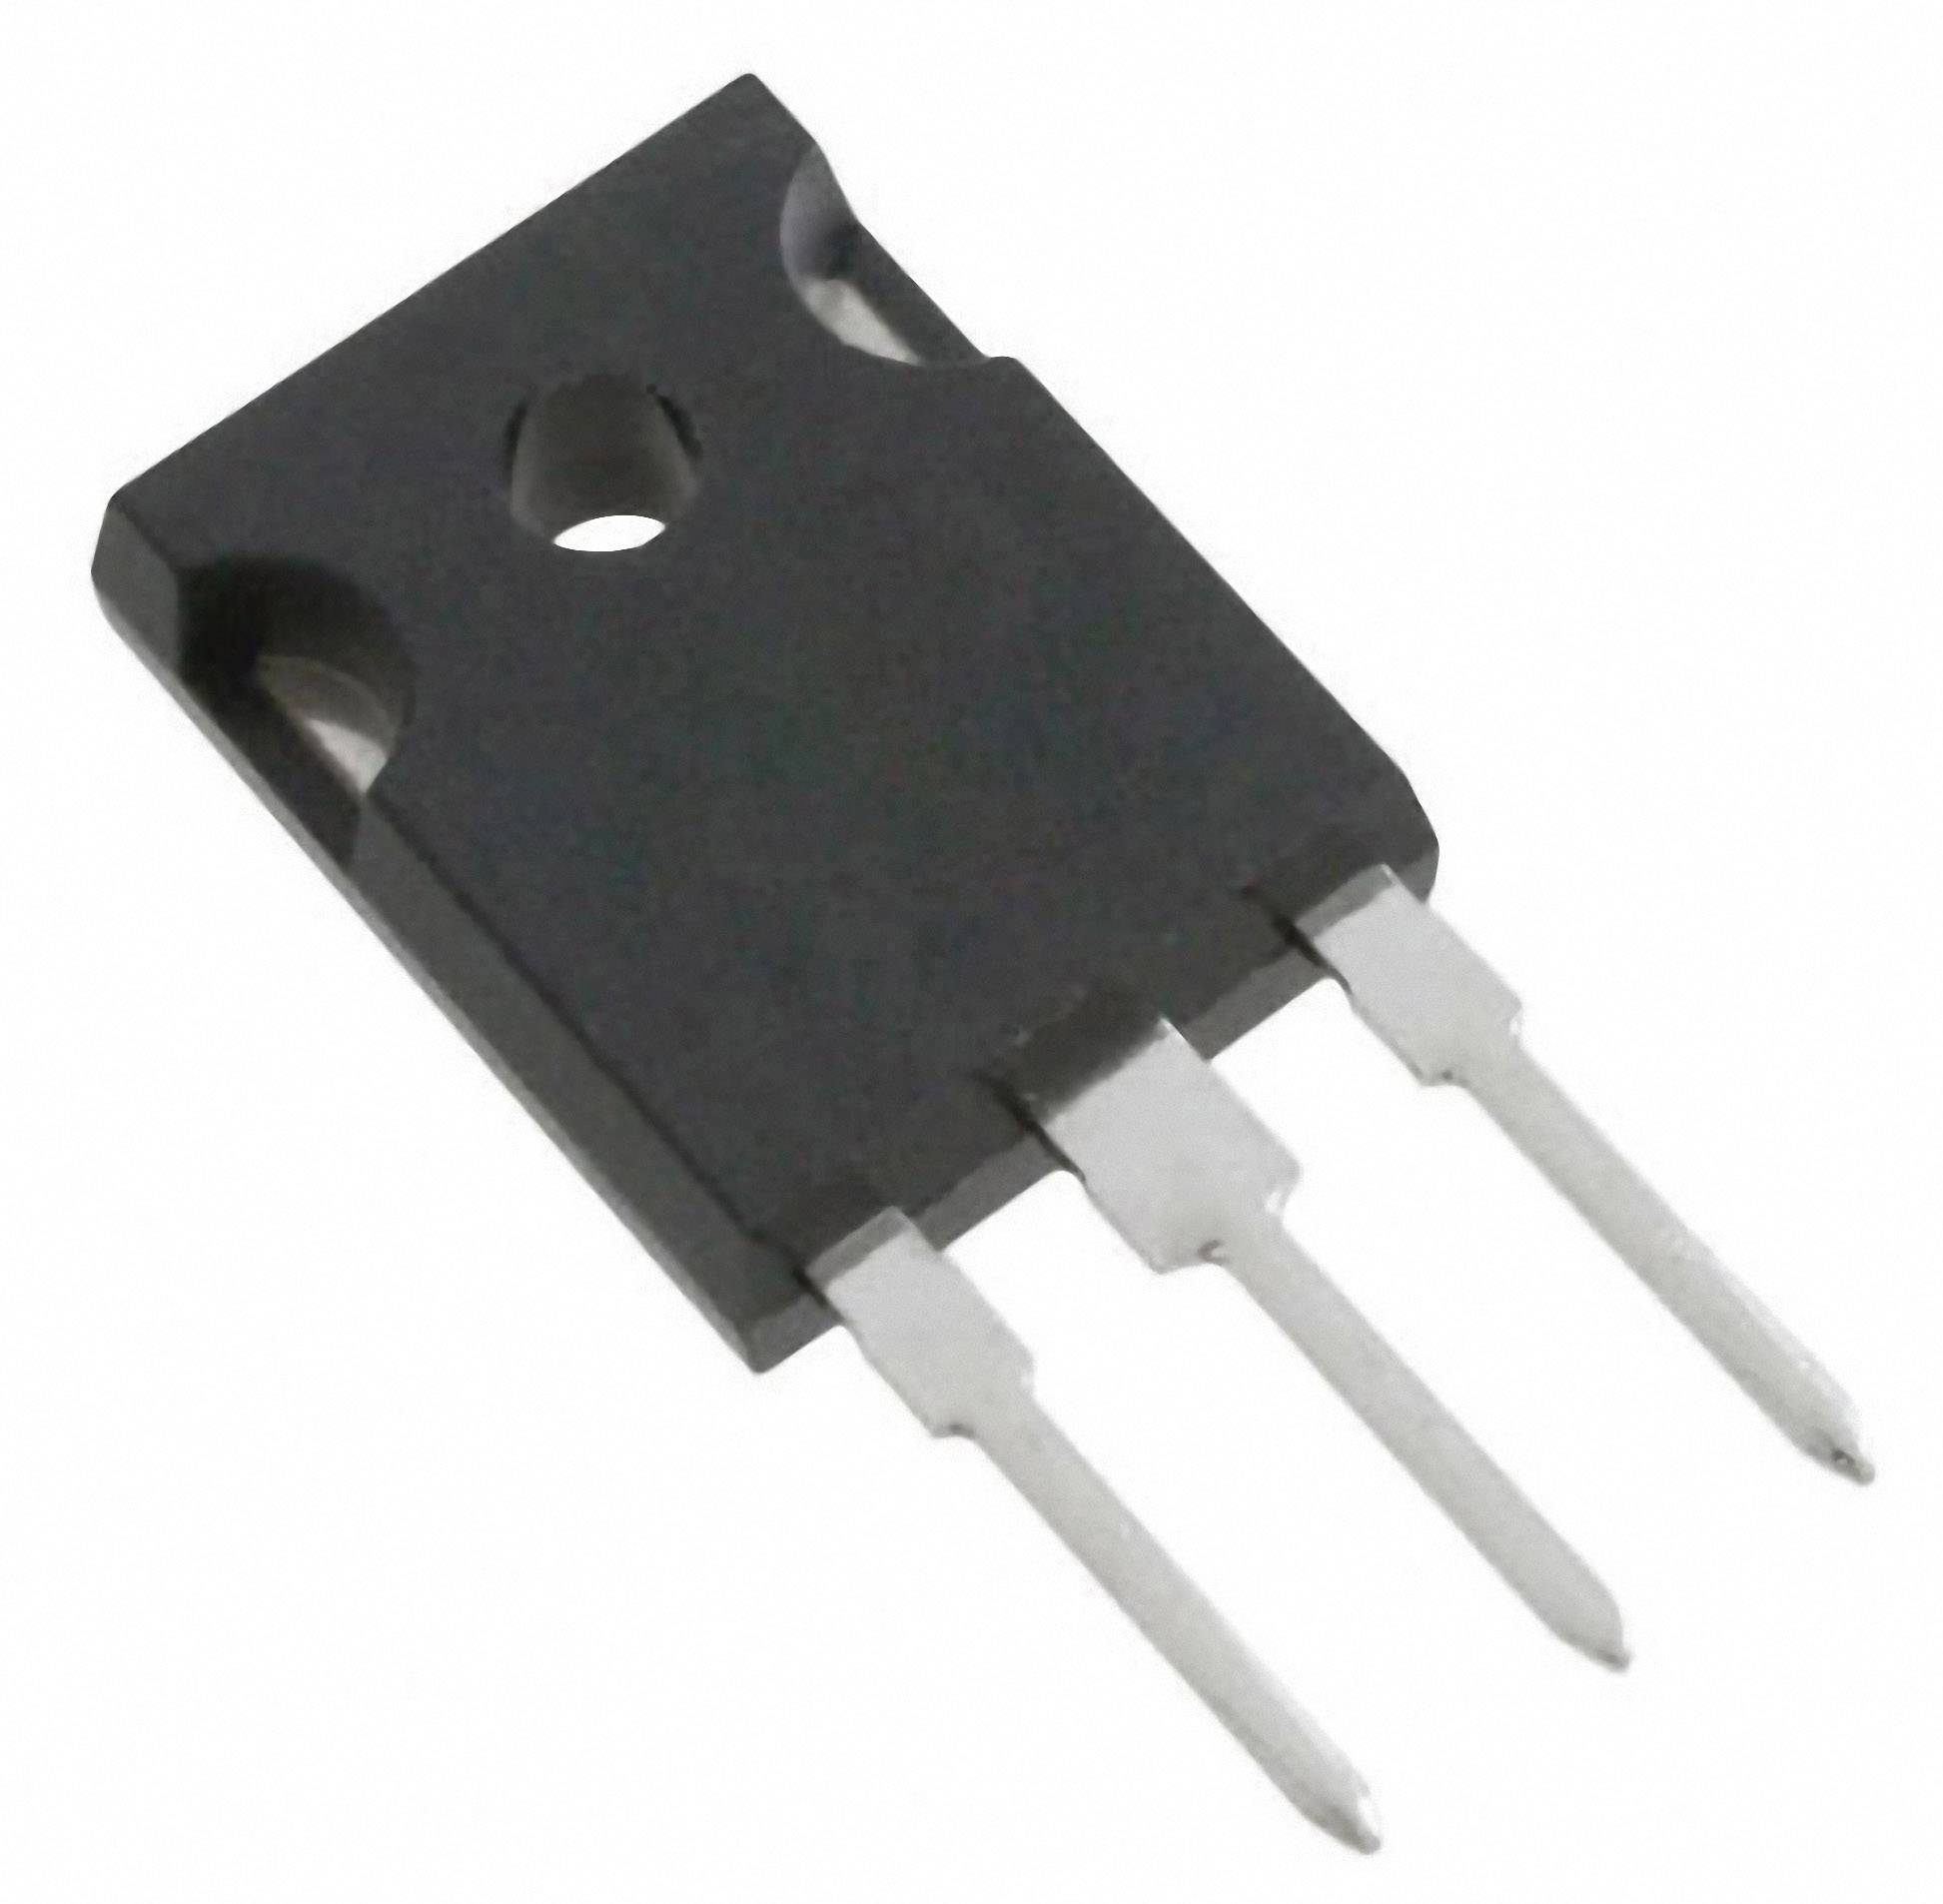 MOSFET Fairchild Semiconductor N kanál N-CH 6 FCH47N60_F133 TO-247-3 FSC